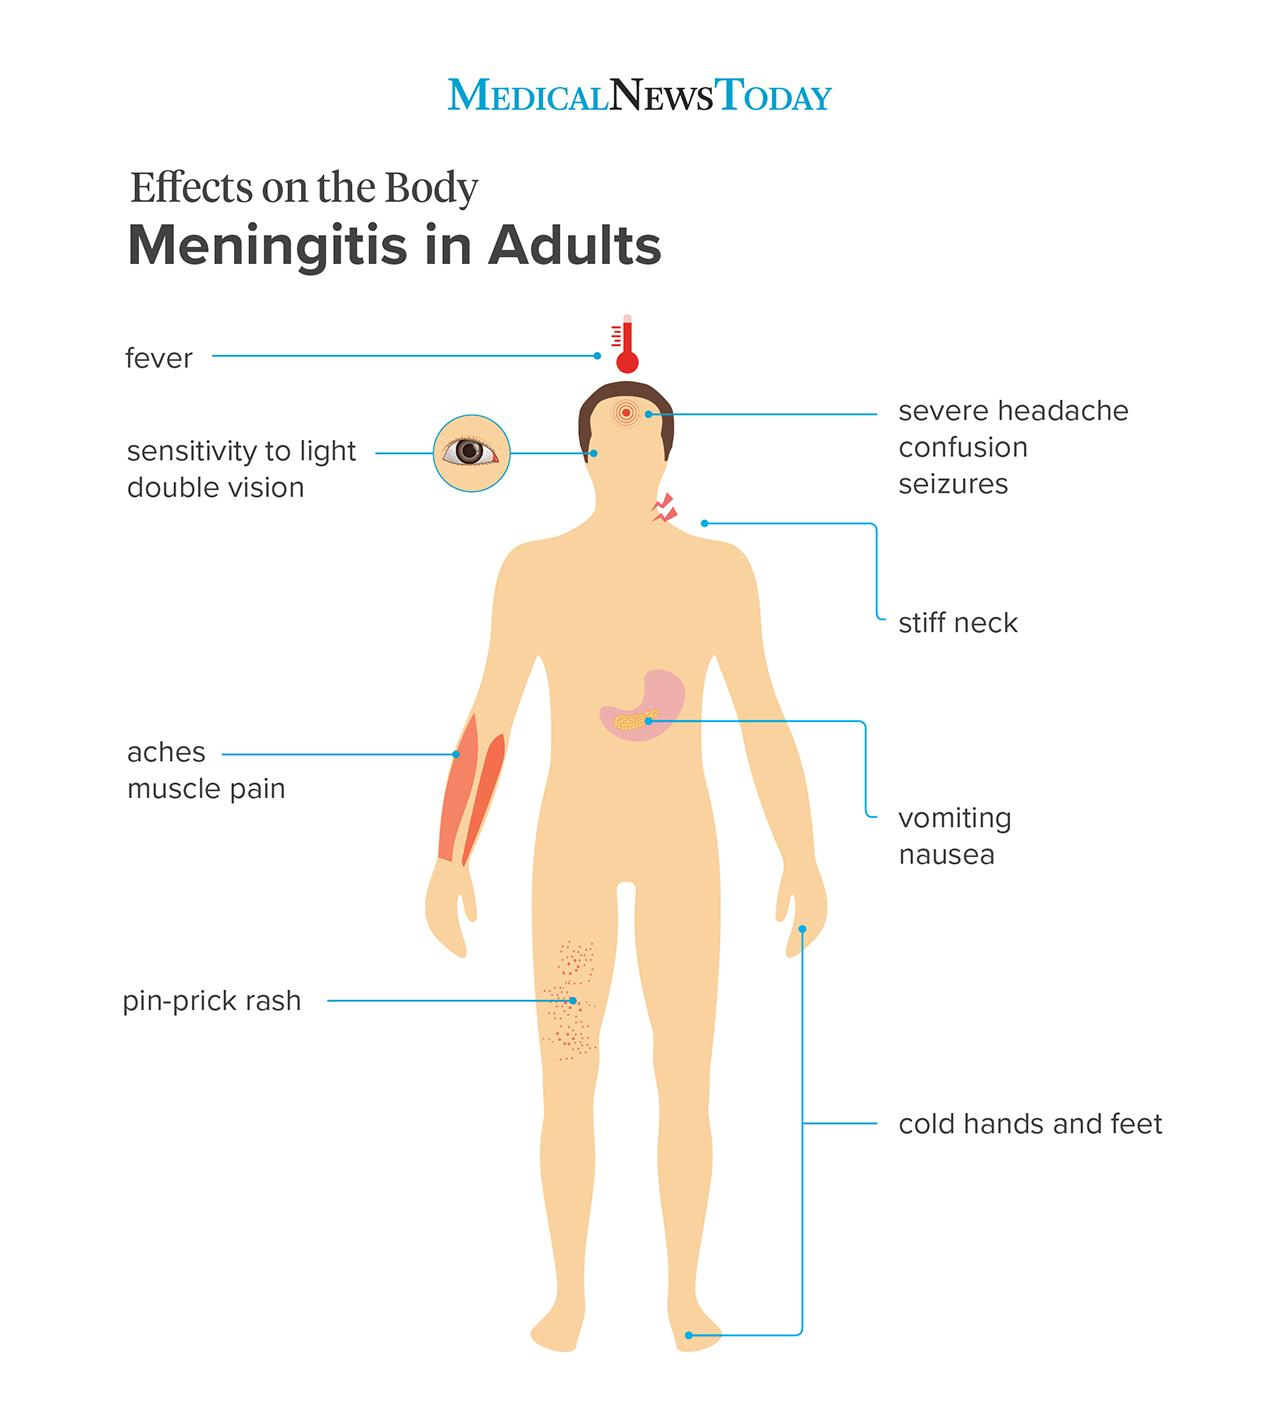 meningitis in adults effects on the body series br image credit stephen kelly 2019 br